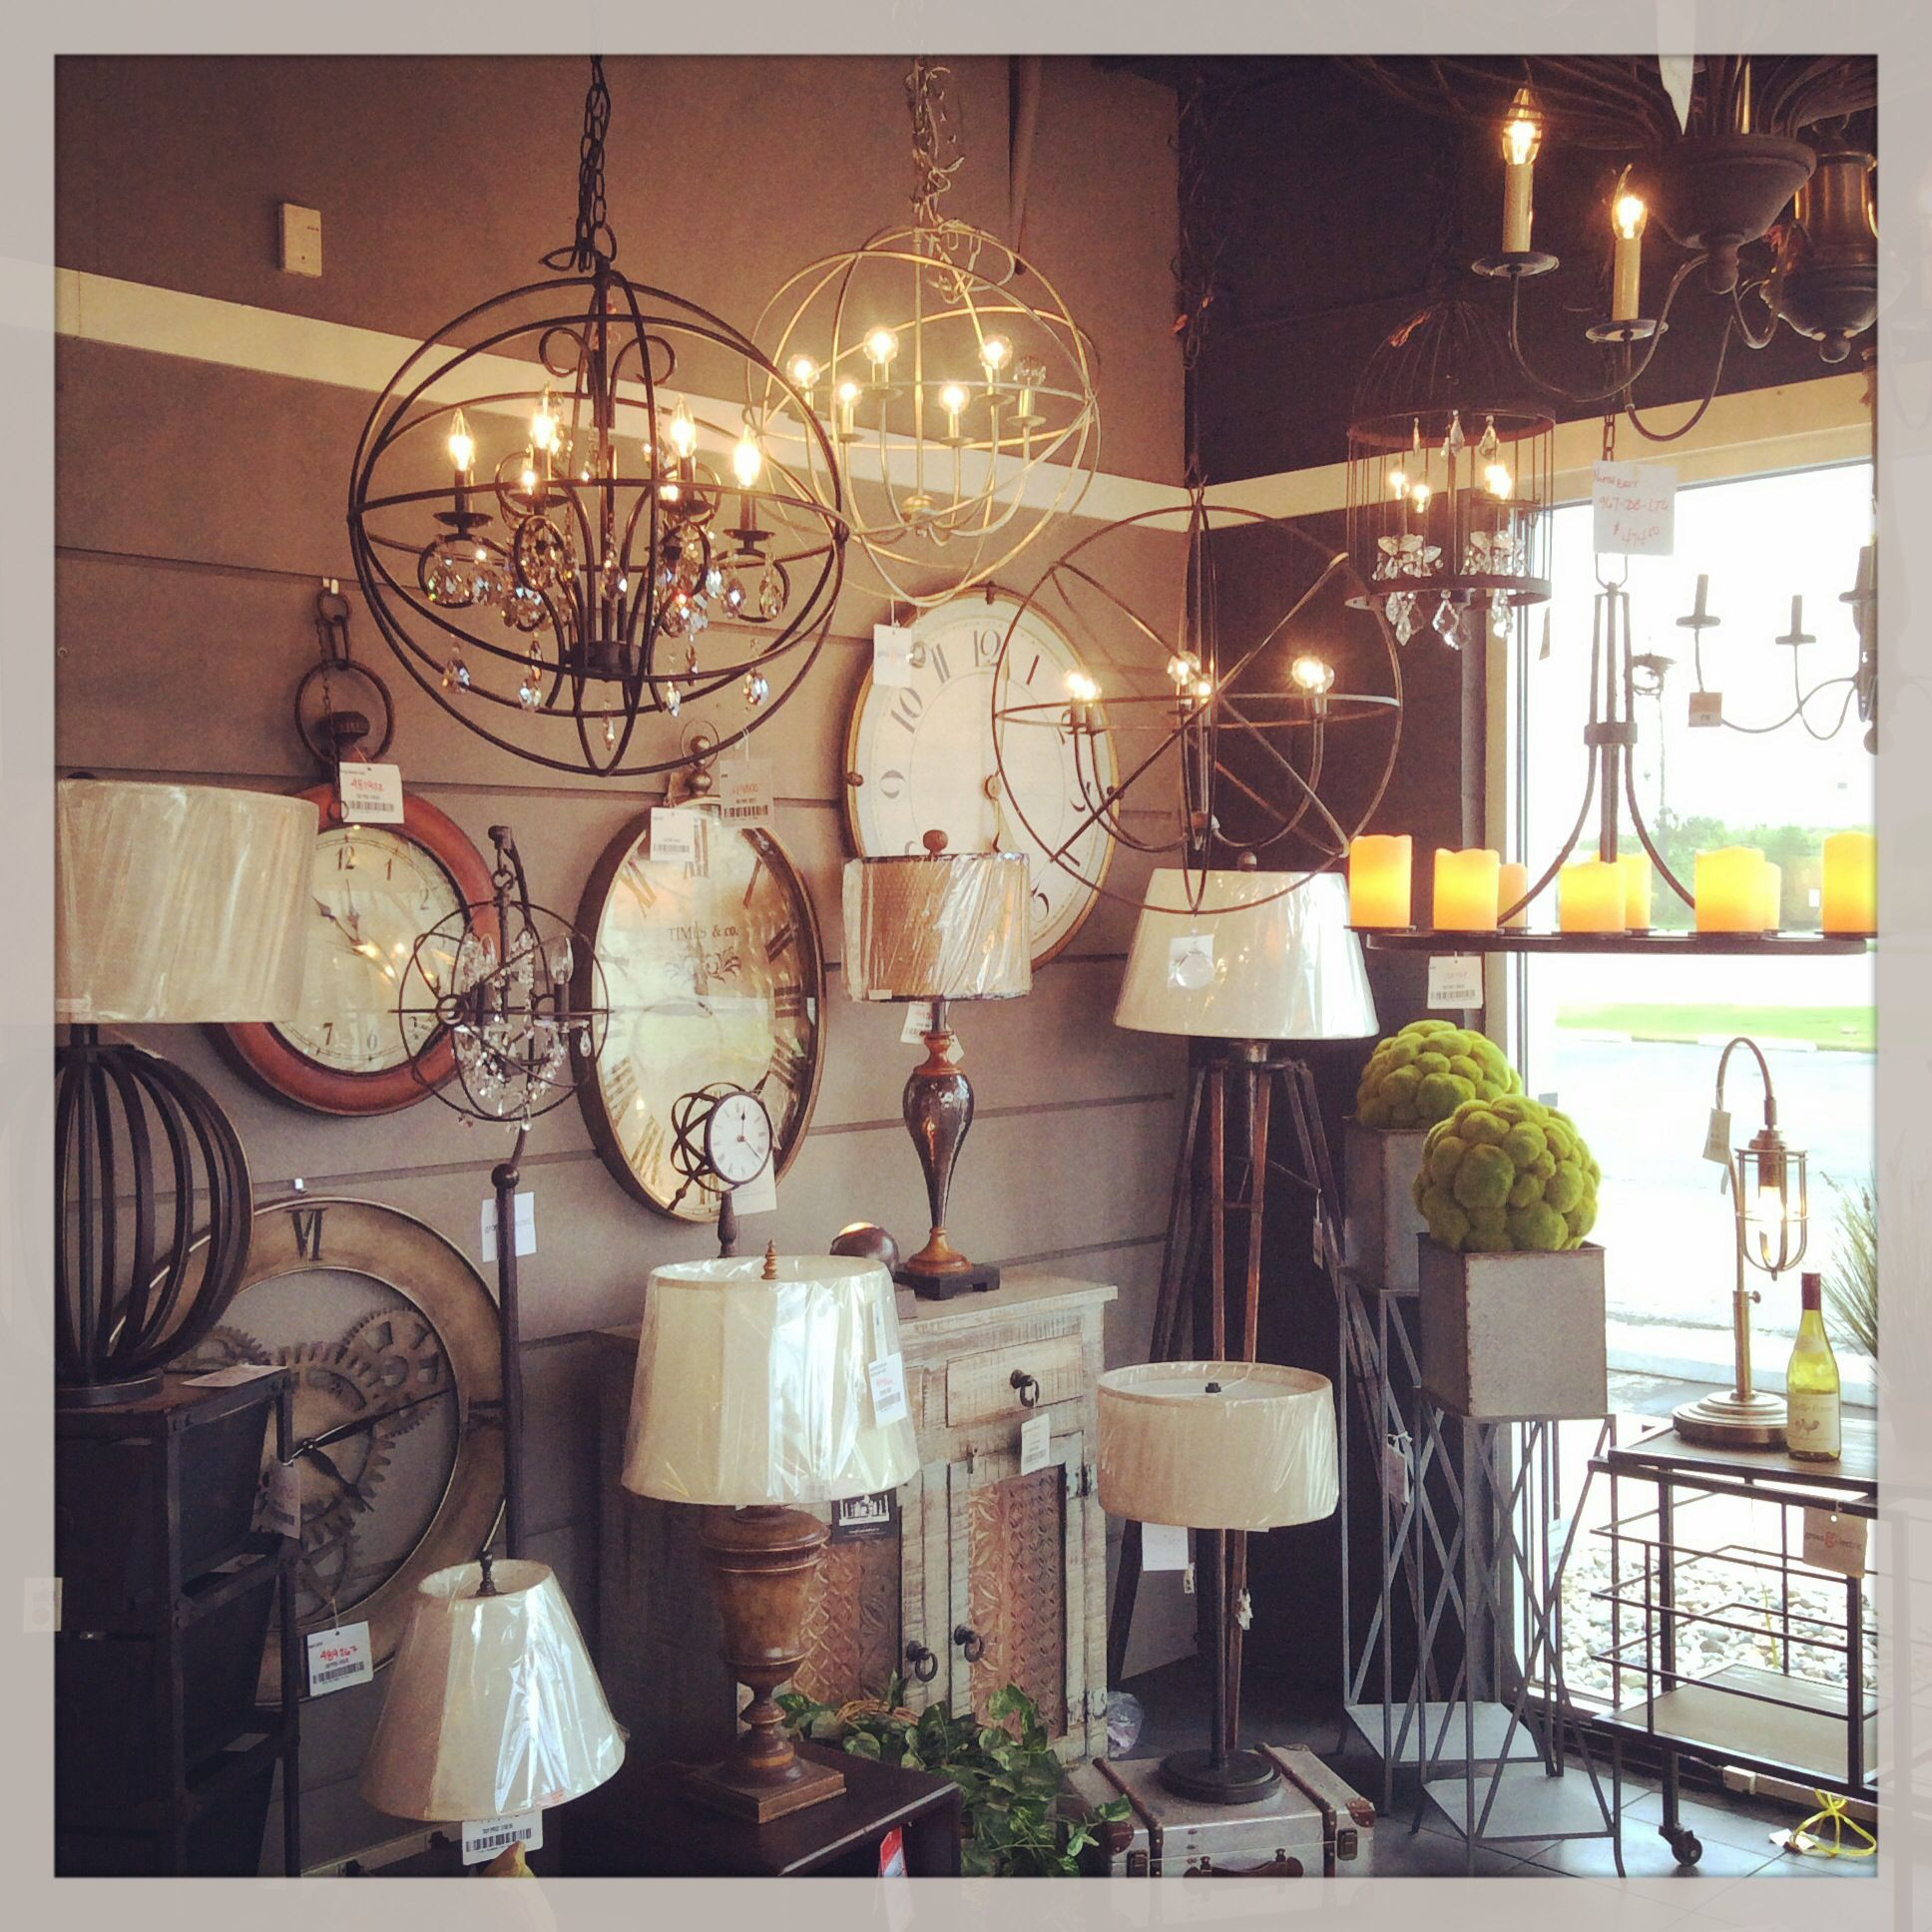 e check out our restoration style chandeliers and lamps in our